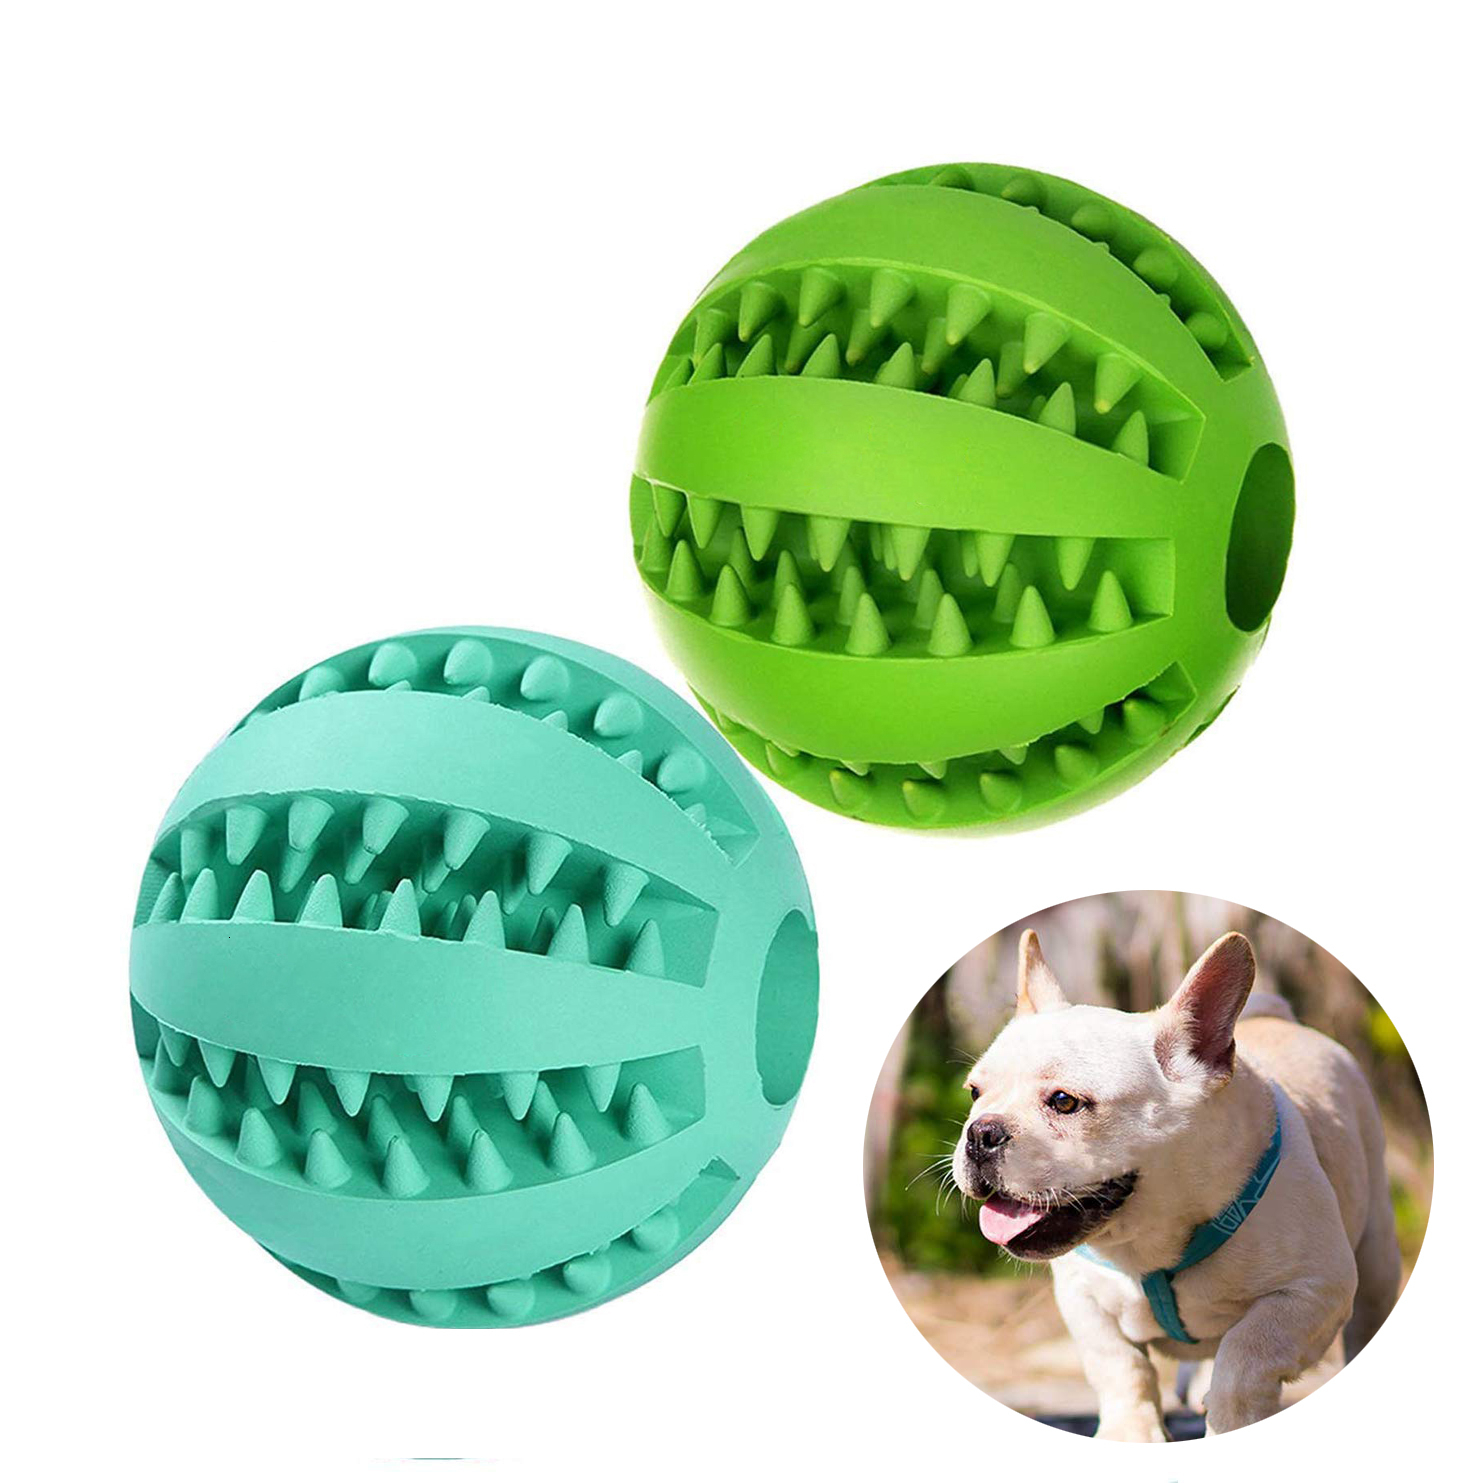 Dog Toys For Dog Toothbrush Clean Ball Food Extra-tough Rubber Interactive Ball Dog Toy For Small Medium Dogs Products image